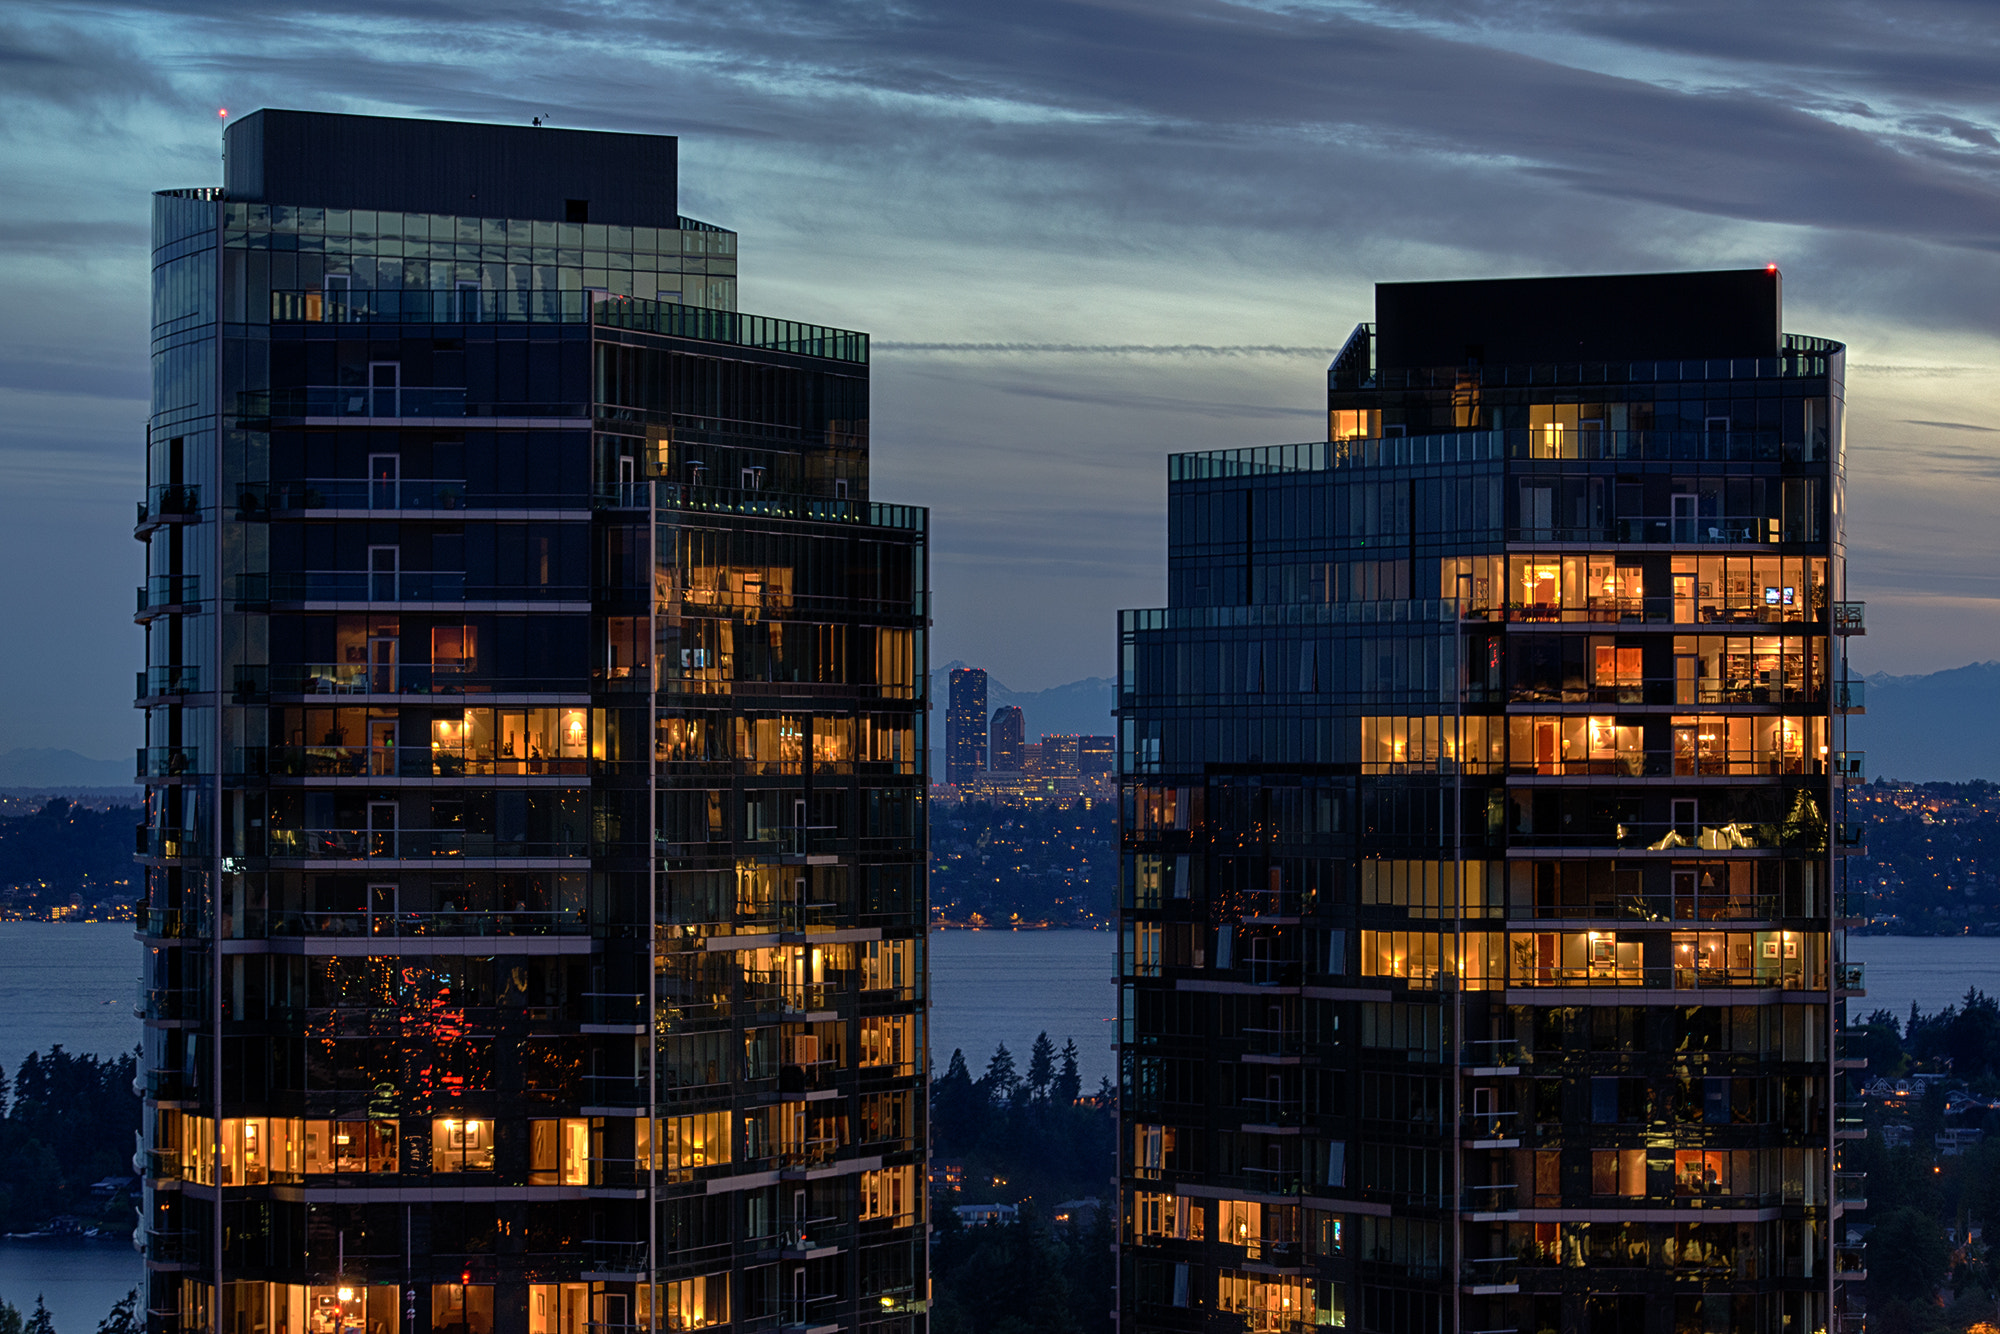 Photograph Bellevue HDR by Tobias Smith on 500px